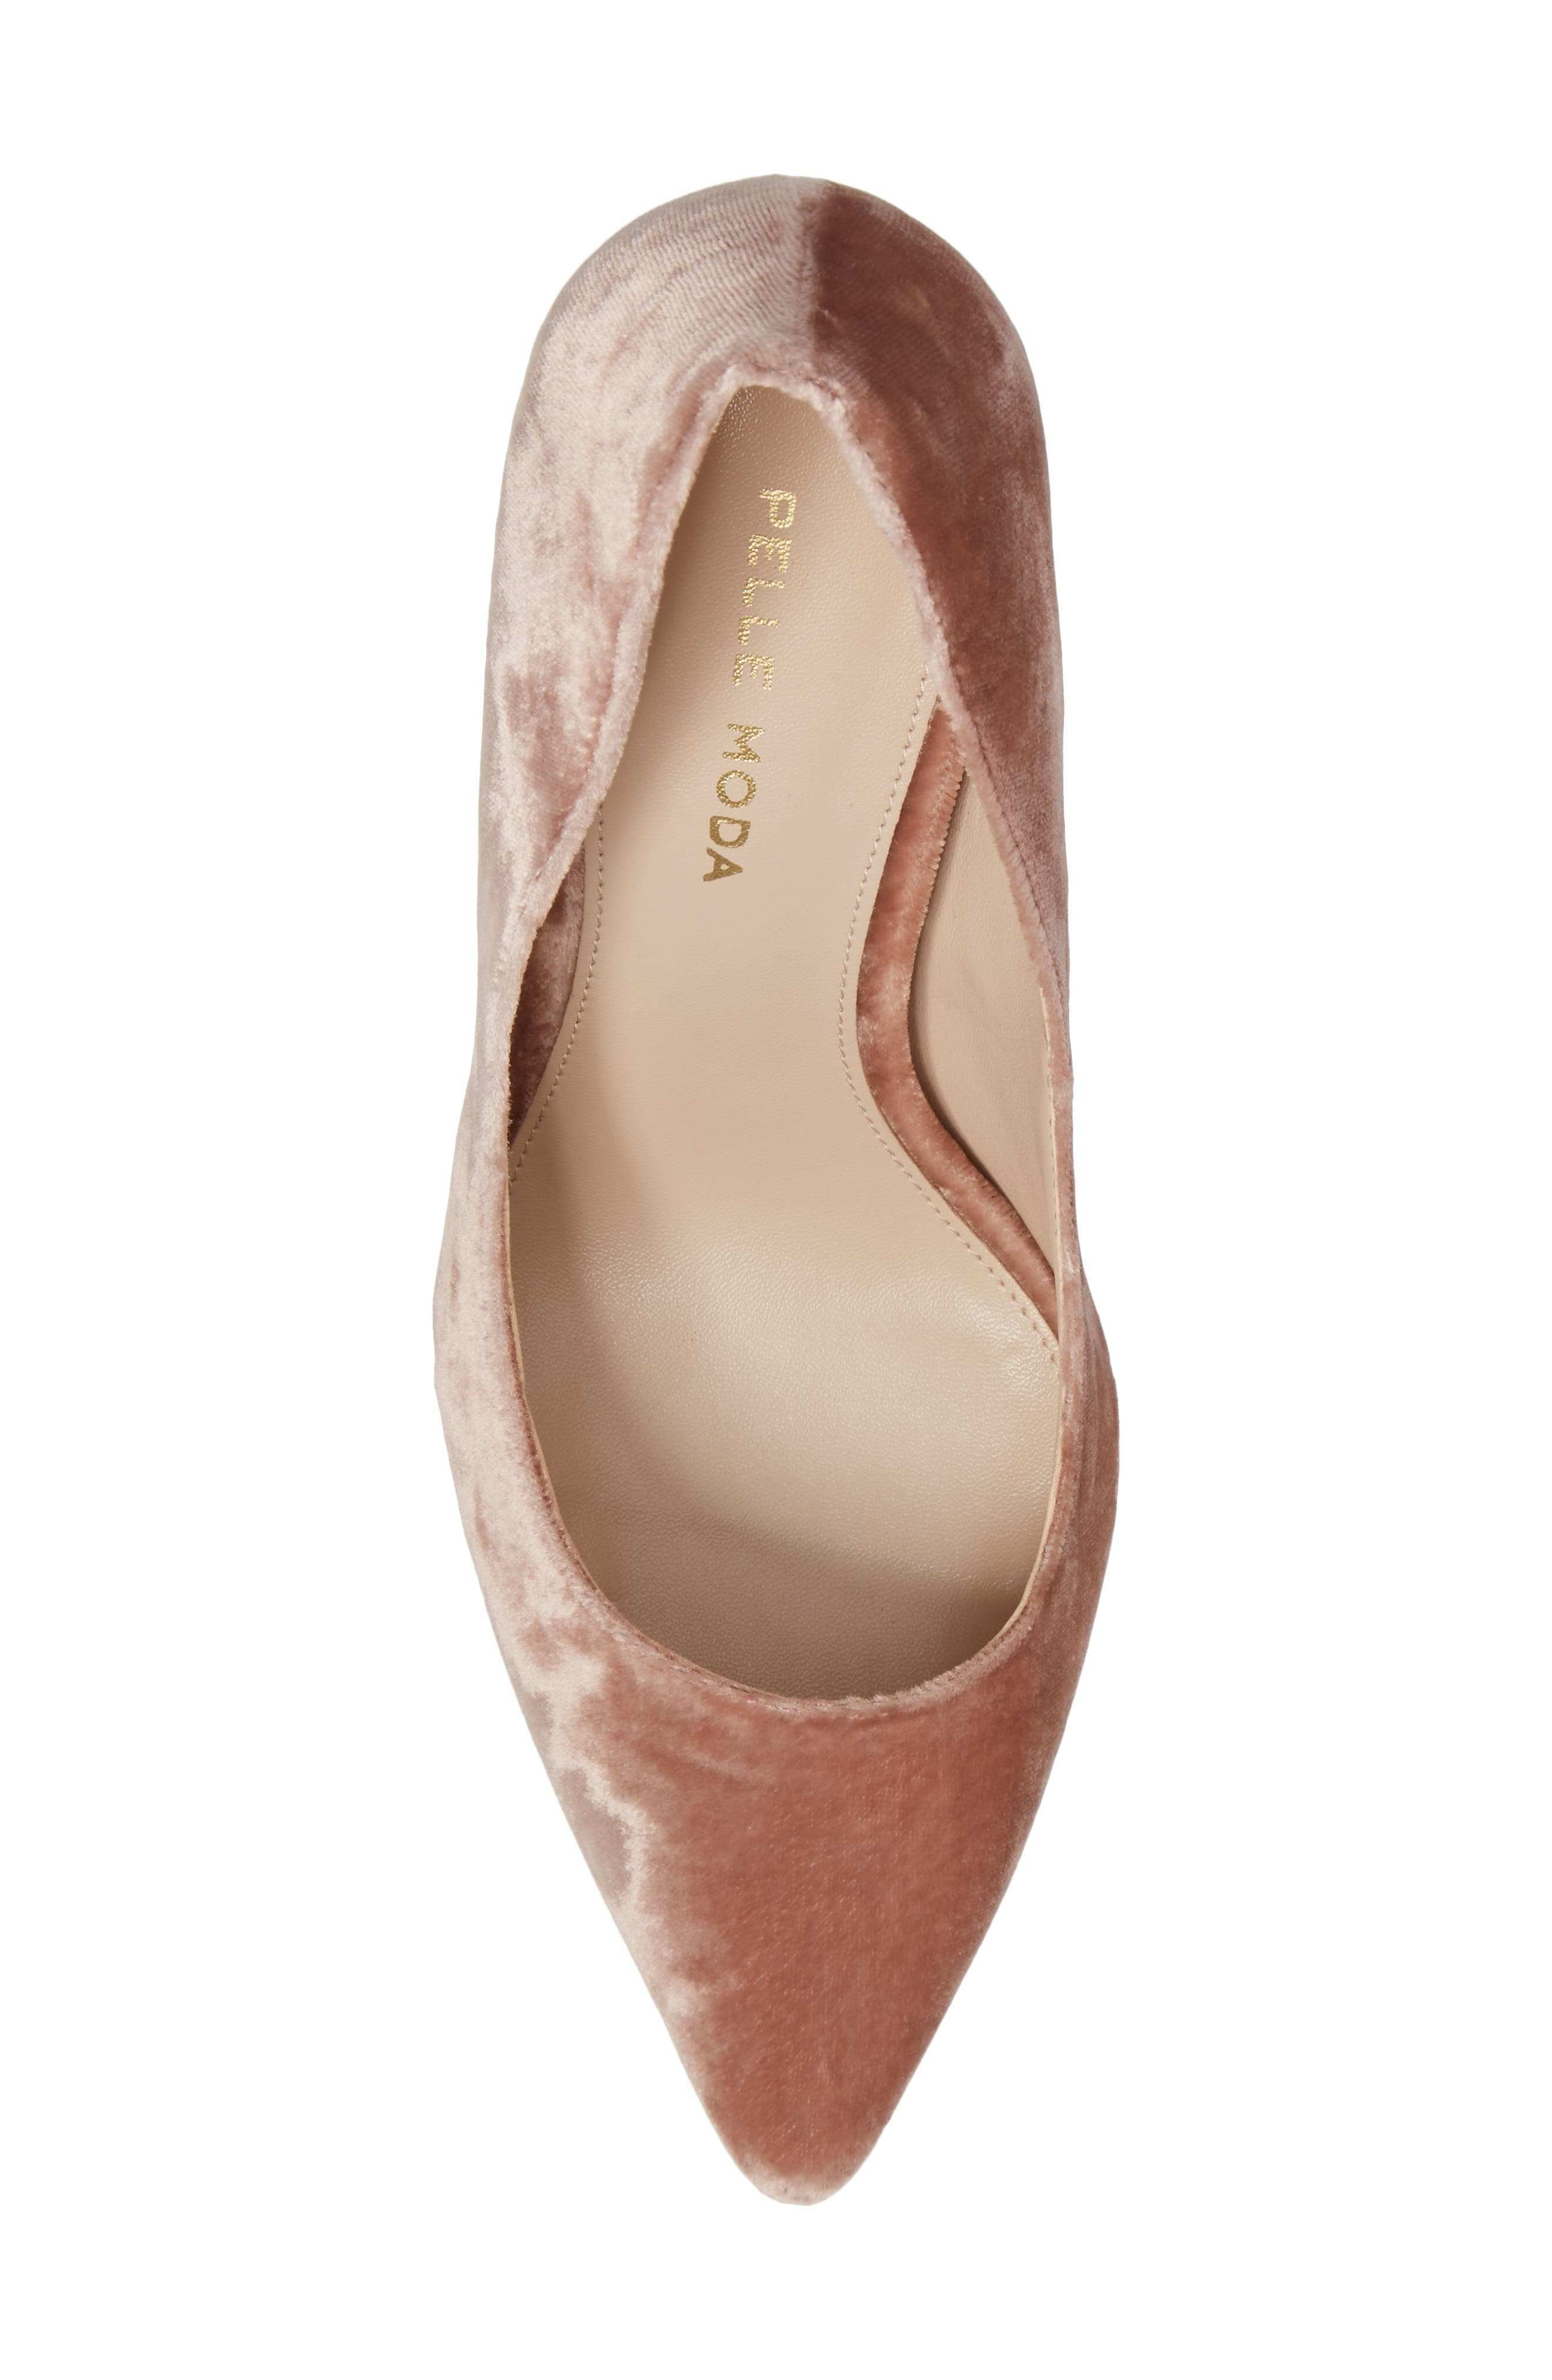 Vally2 Pointy Toe Pump,                             Alternate thumbnail 5, color,                             Blush Fabric